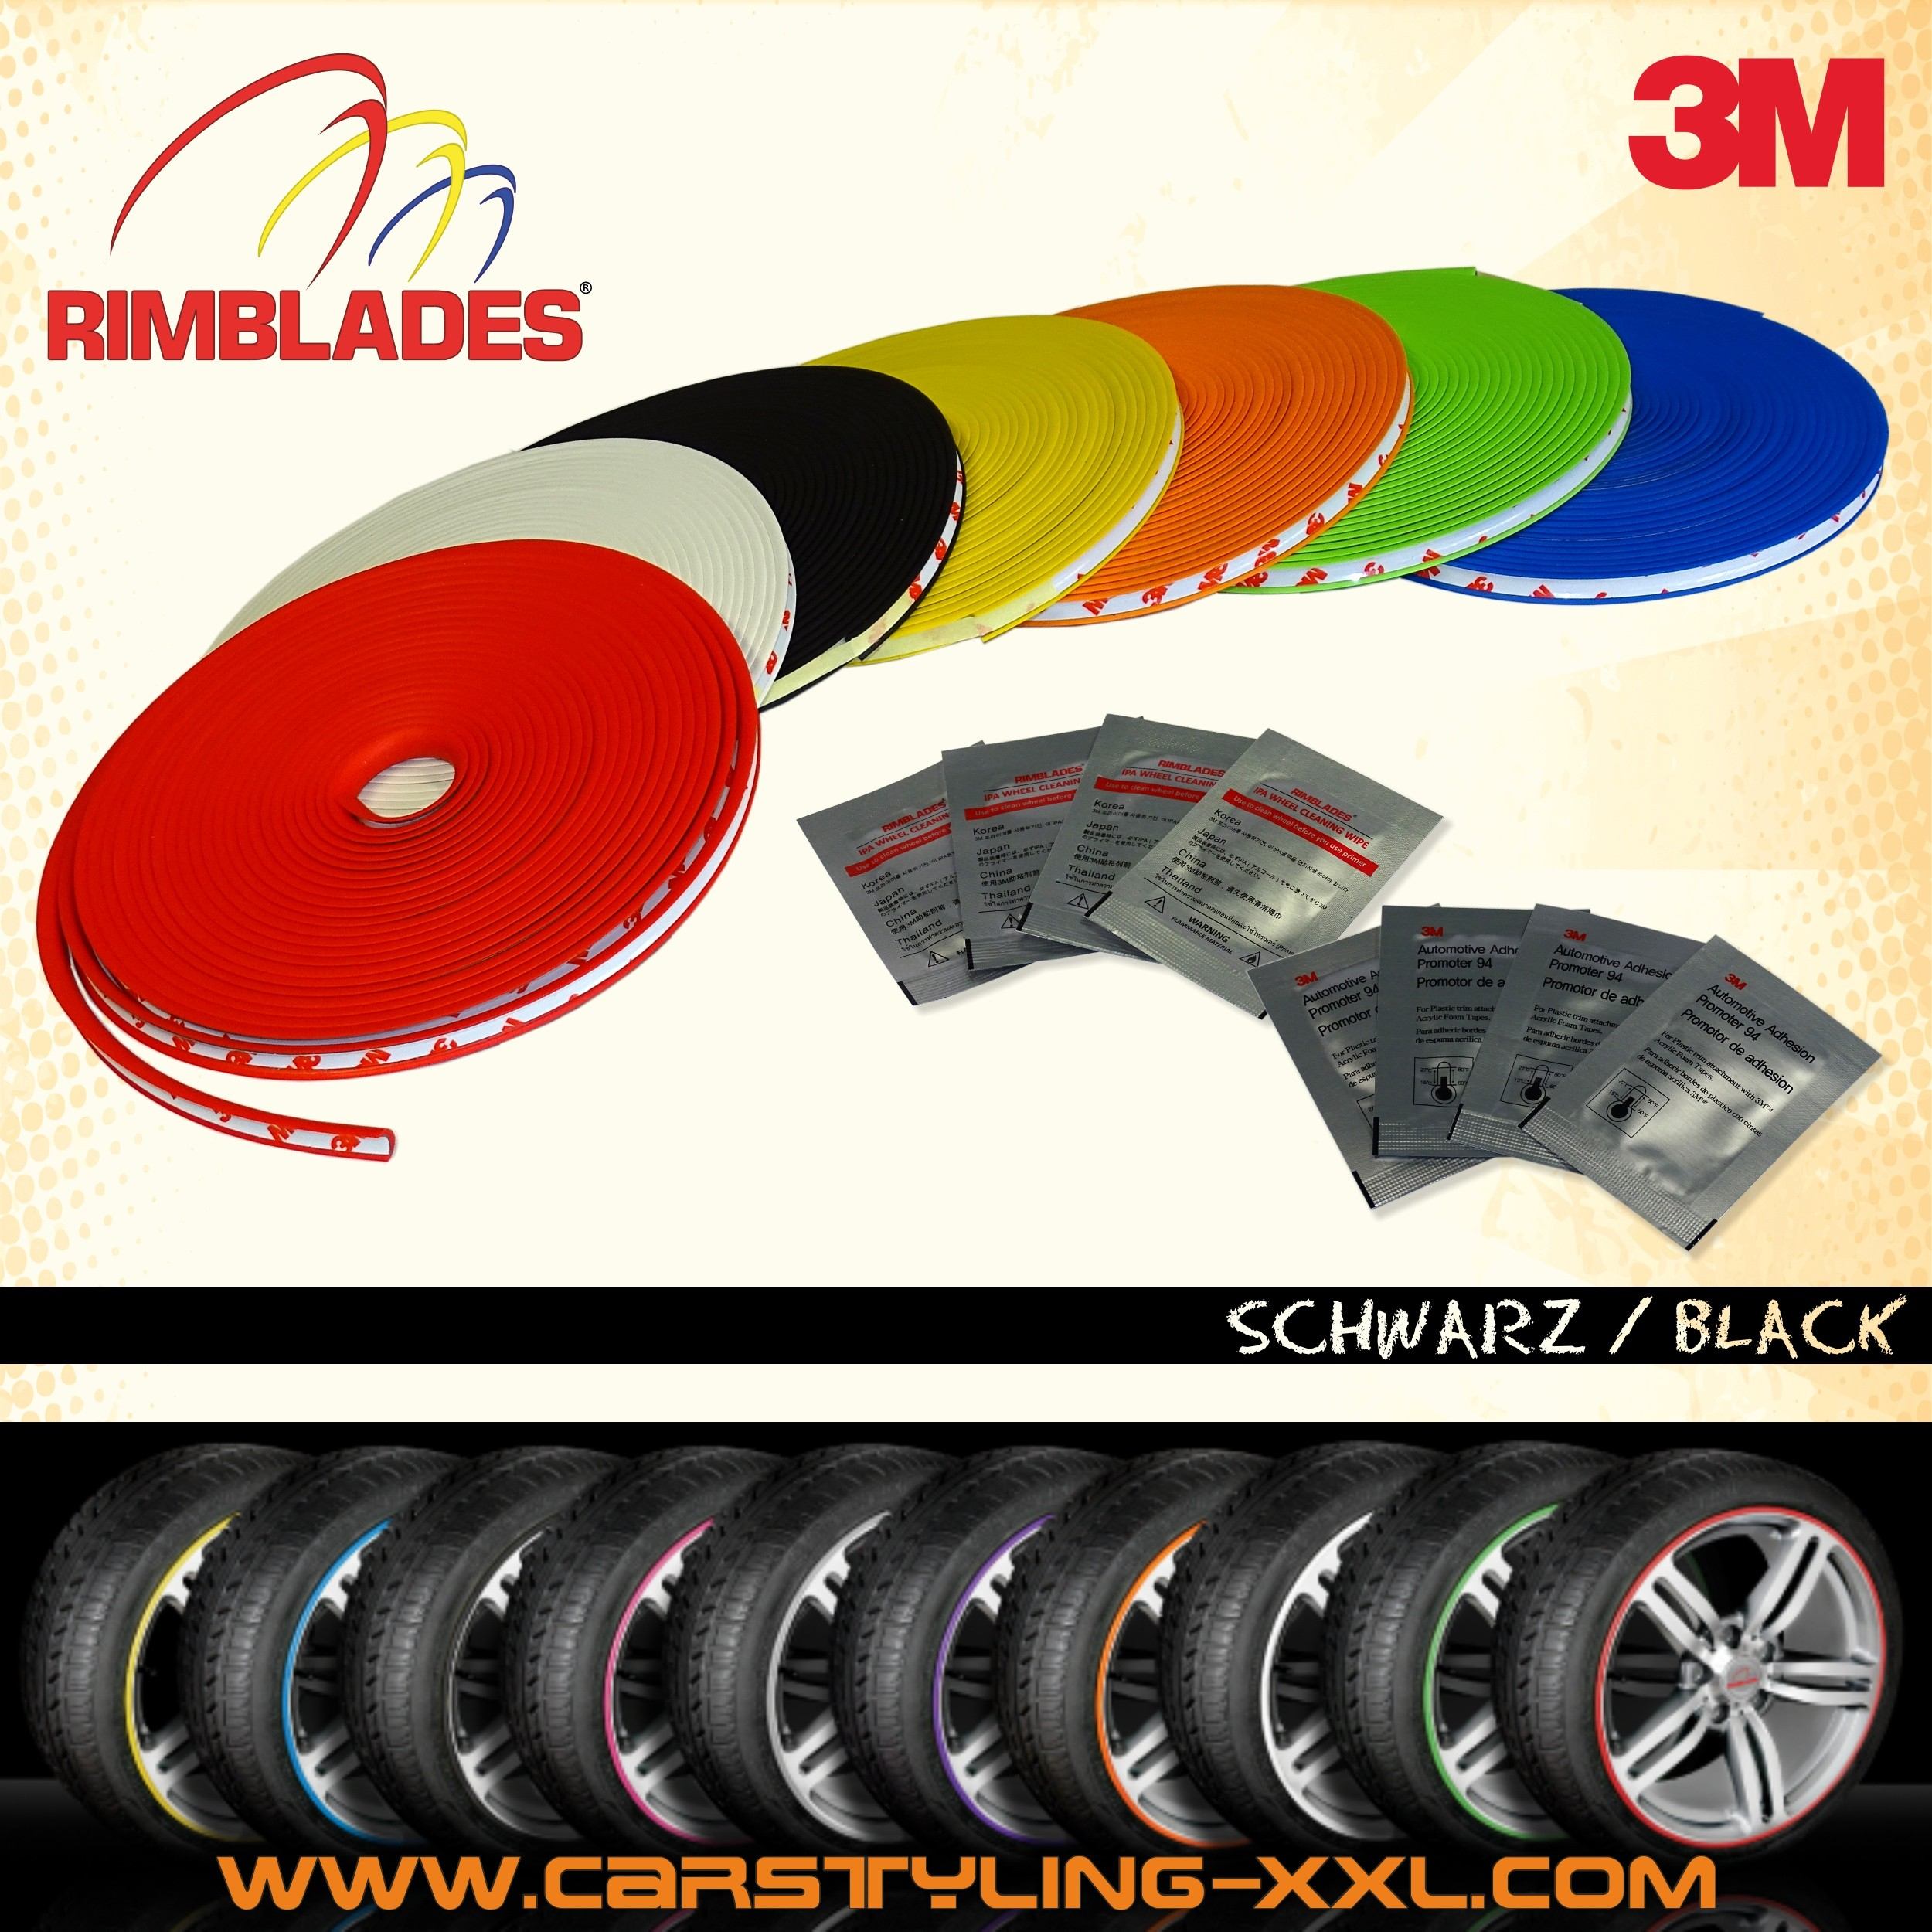 NEW - Rimblades with 3M glue - Singlepack - colour: black - Premium rim protection and styling for alloy wheel rims up to 22'' – Bild 1